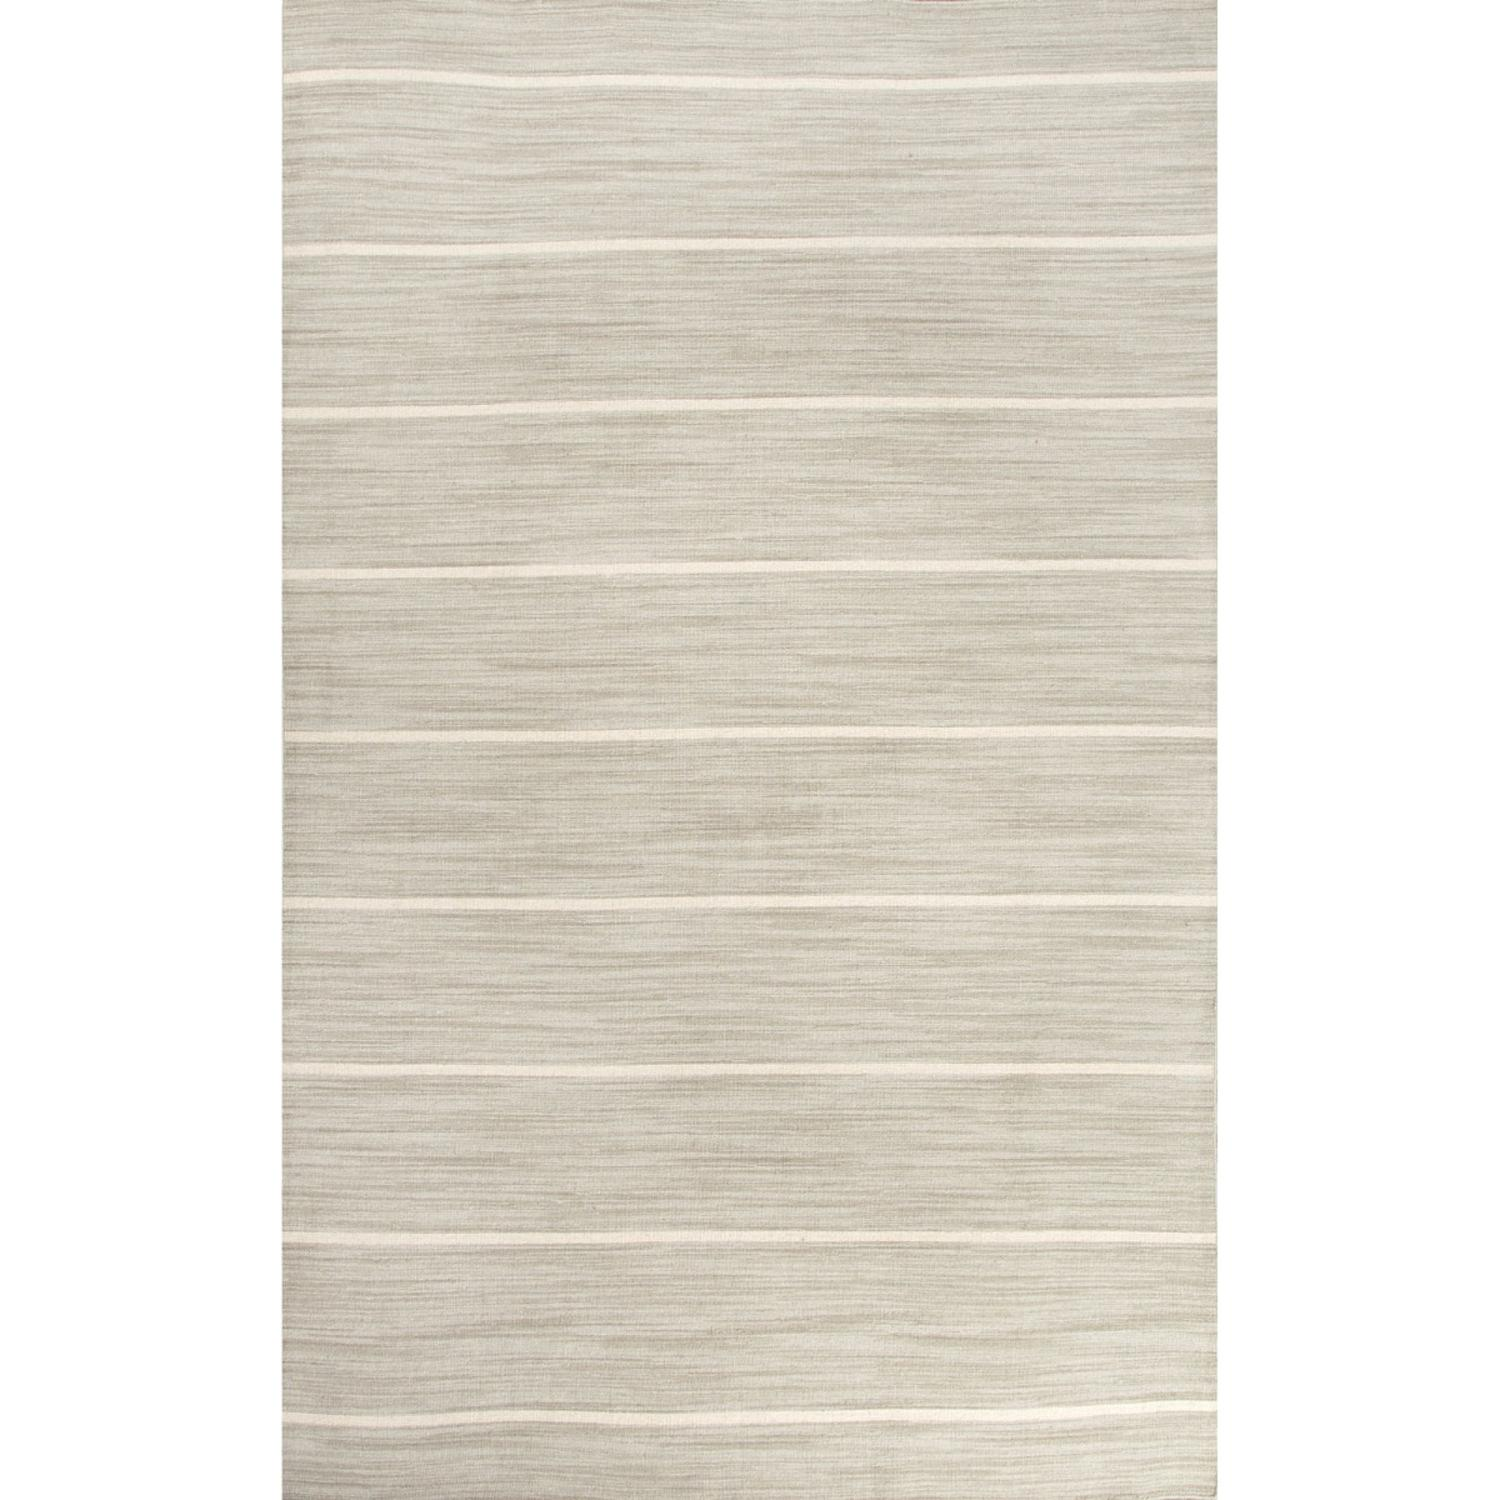 8' x 10' Ash Gray and Snow White Cape Cod Flat Weave Wool Area Throw Rug